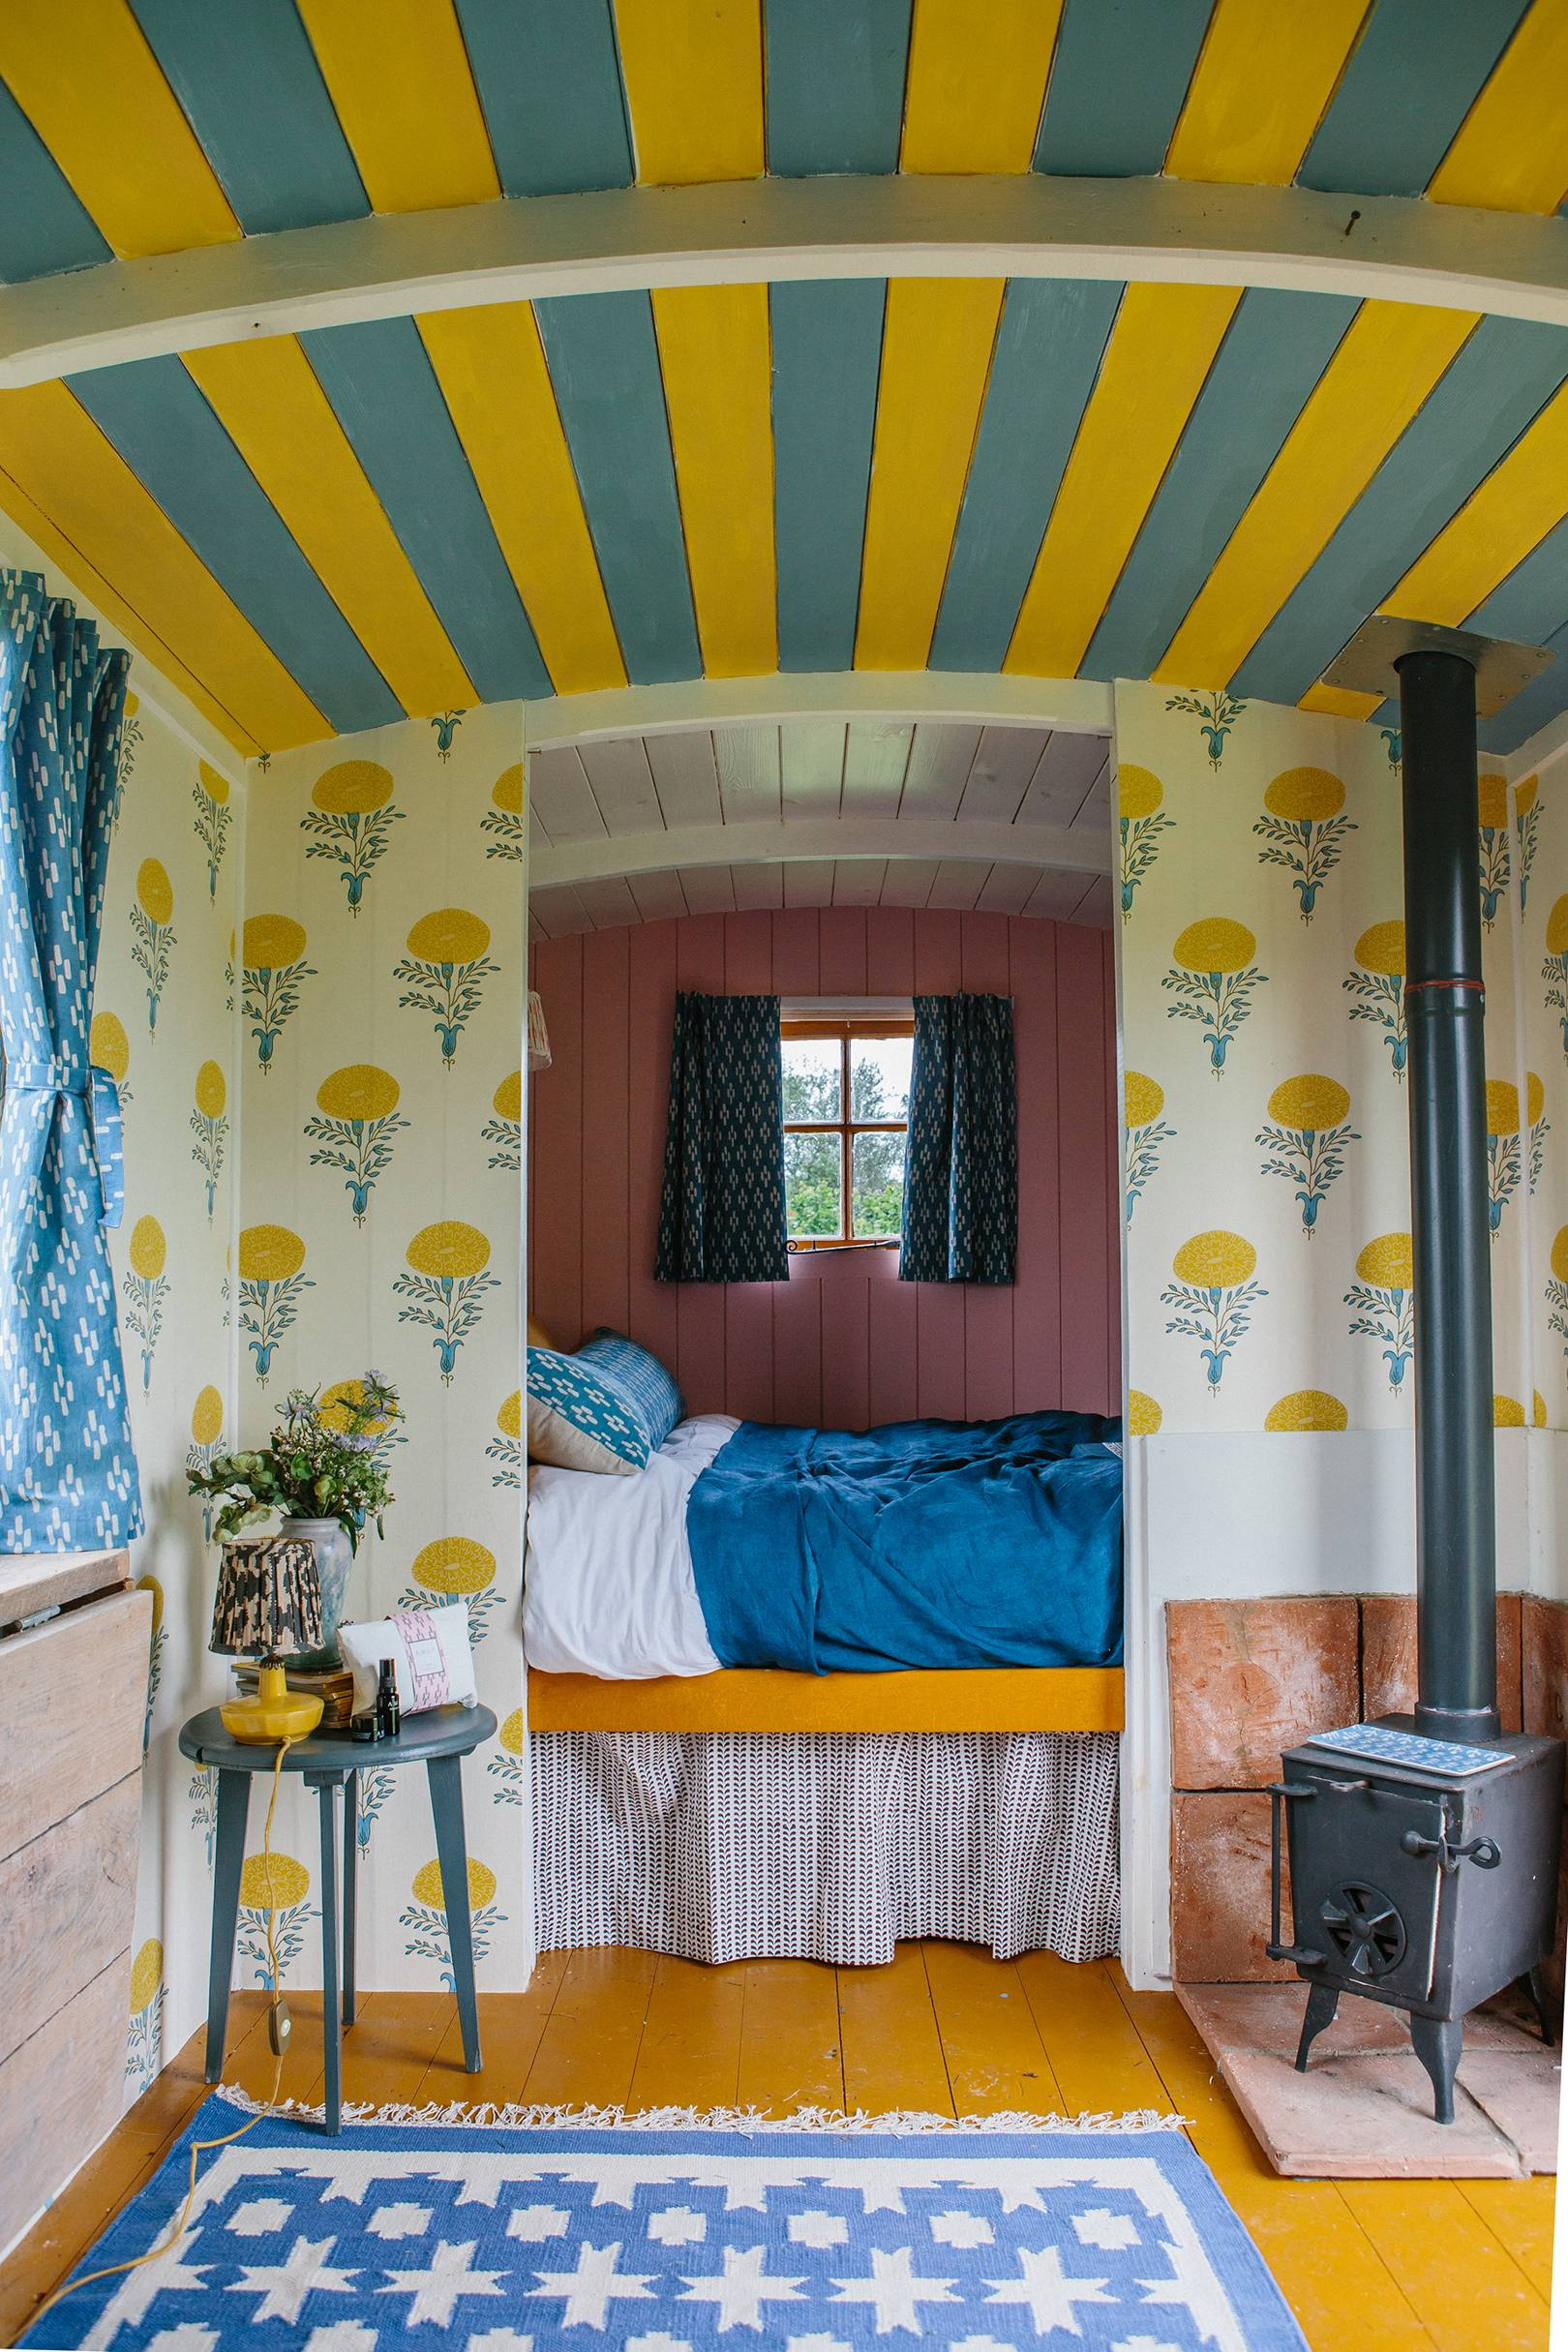 An utterly charming shepherd's hut by textile designer Molly Mahon